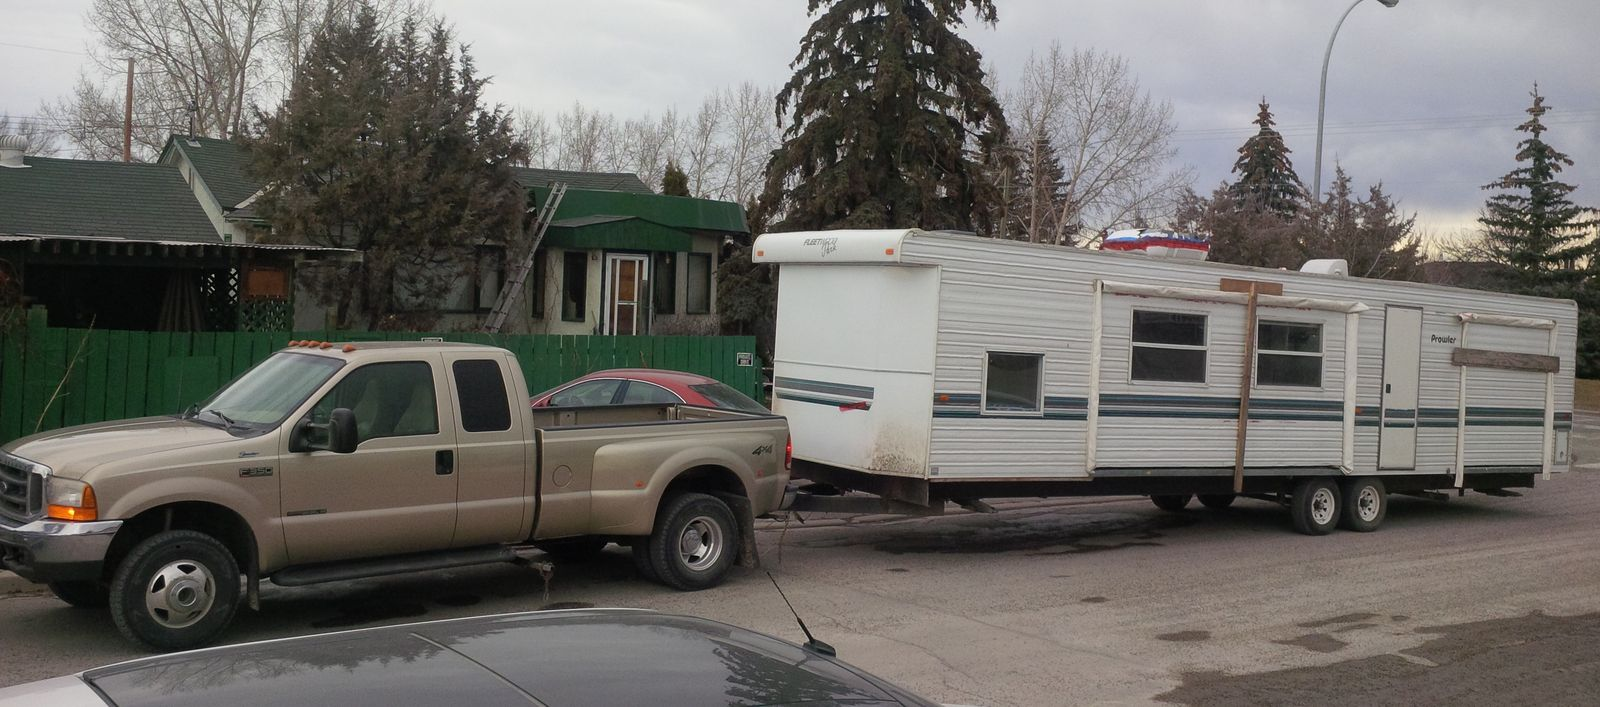 Saskatoon Junk and Trash Removal